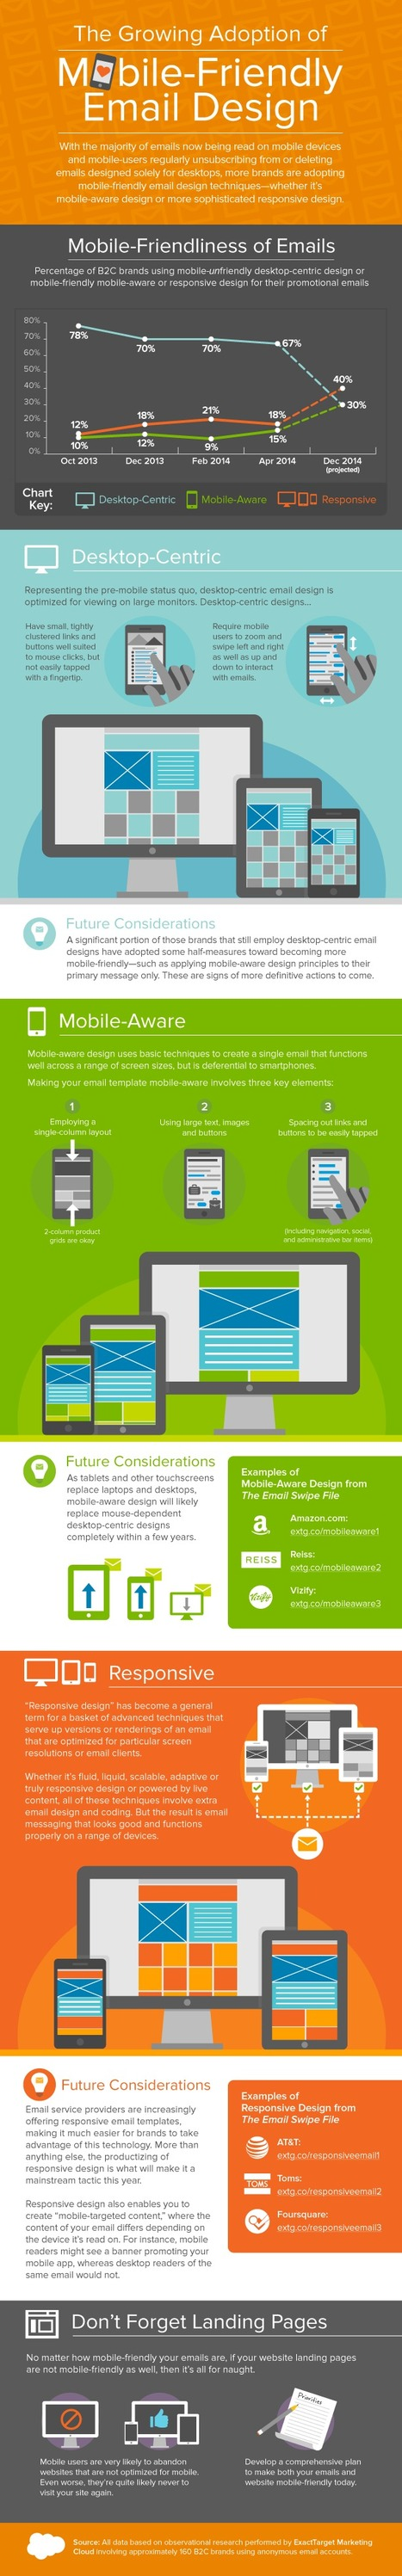 Infographic: The Growing Adoption of Mobile-Friendly Email Design - Email Marketing Rules | Social Media sites | Scoop.it